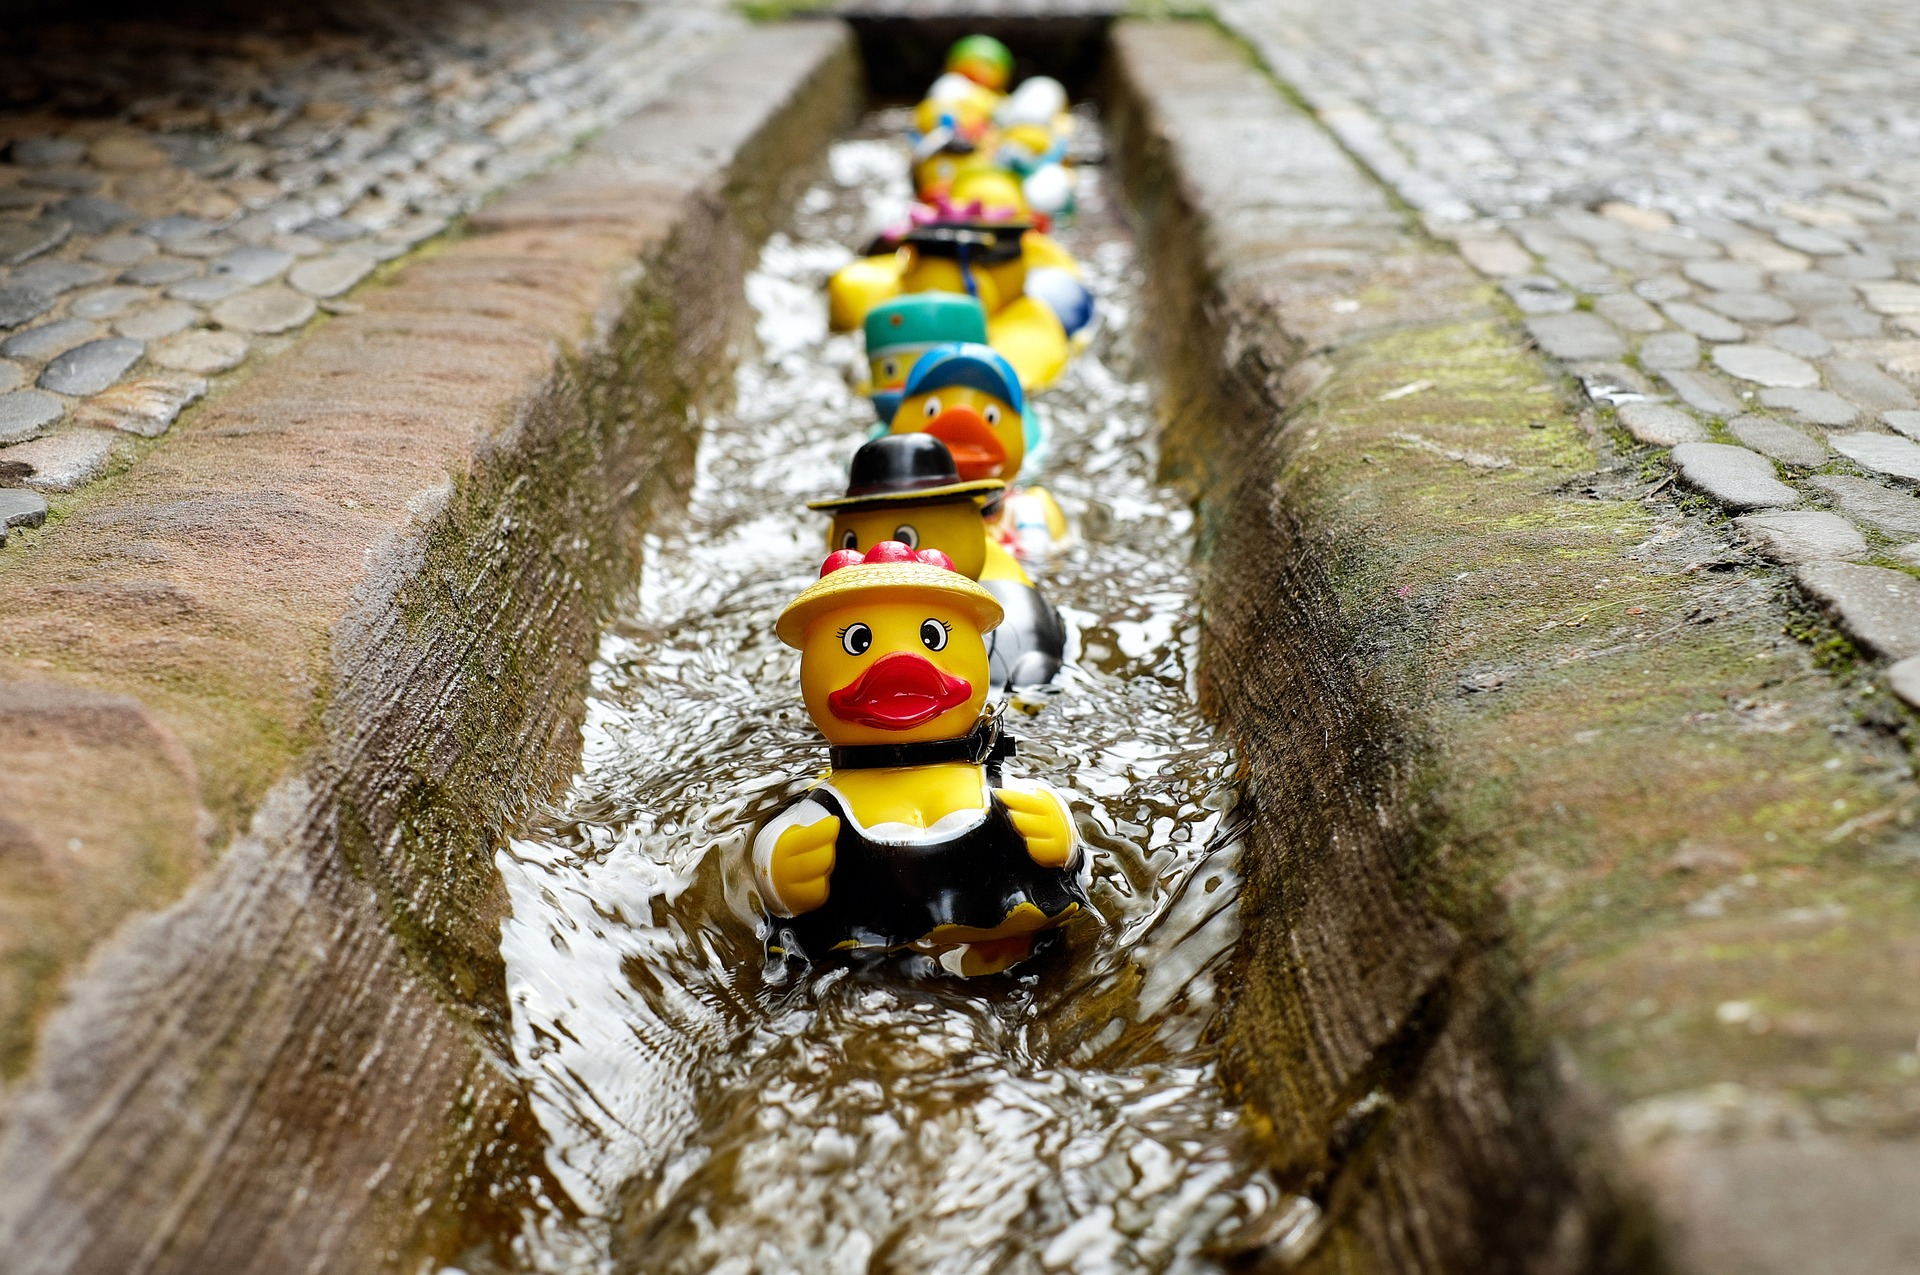 rubber-duck-1401225_1920.jpg